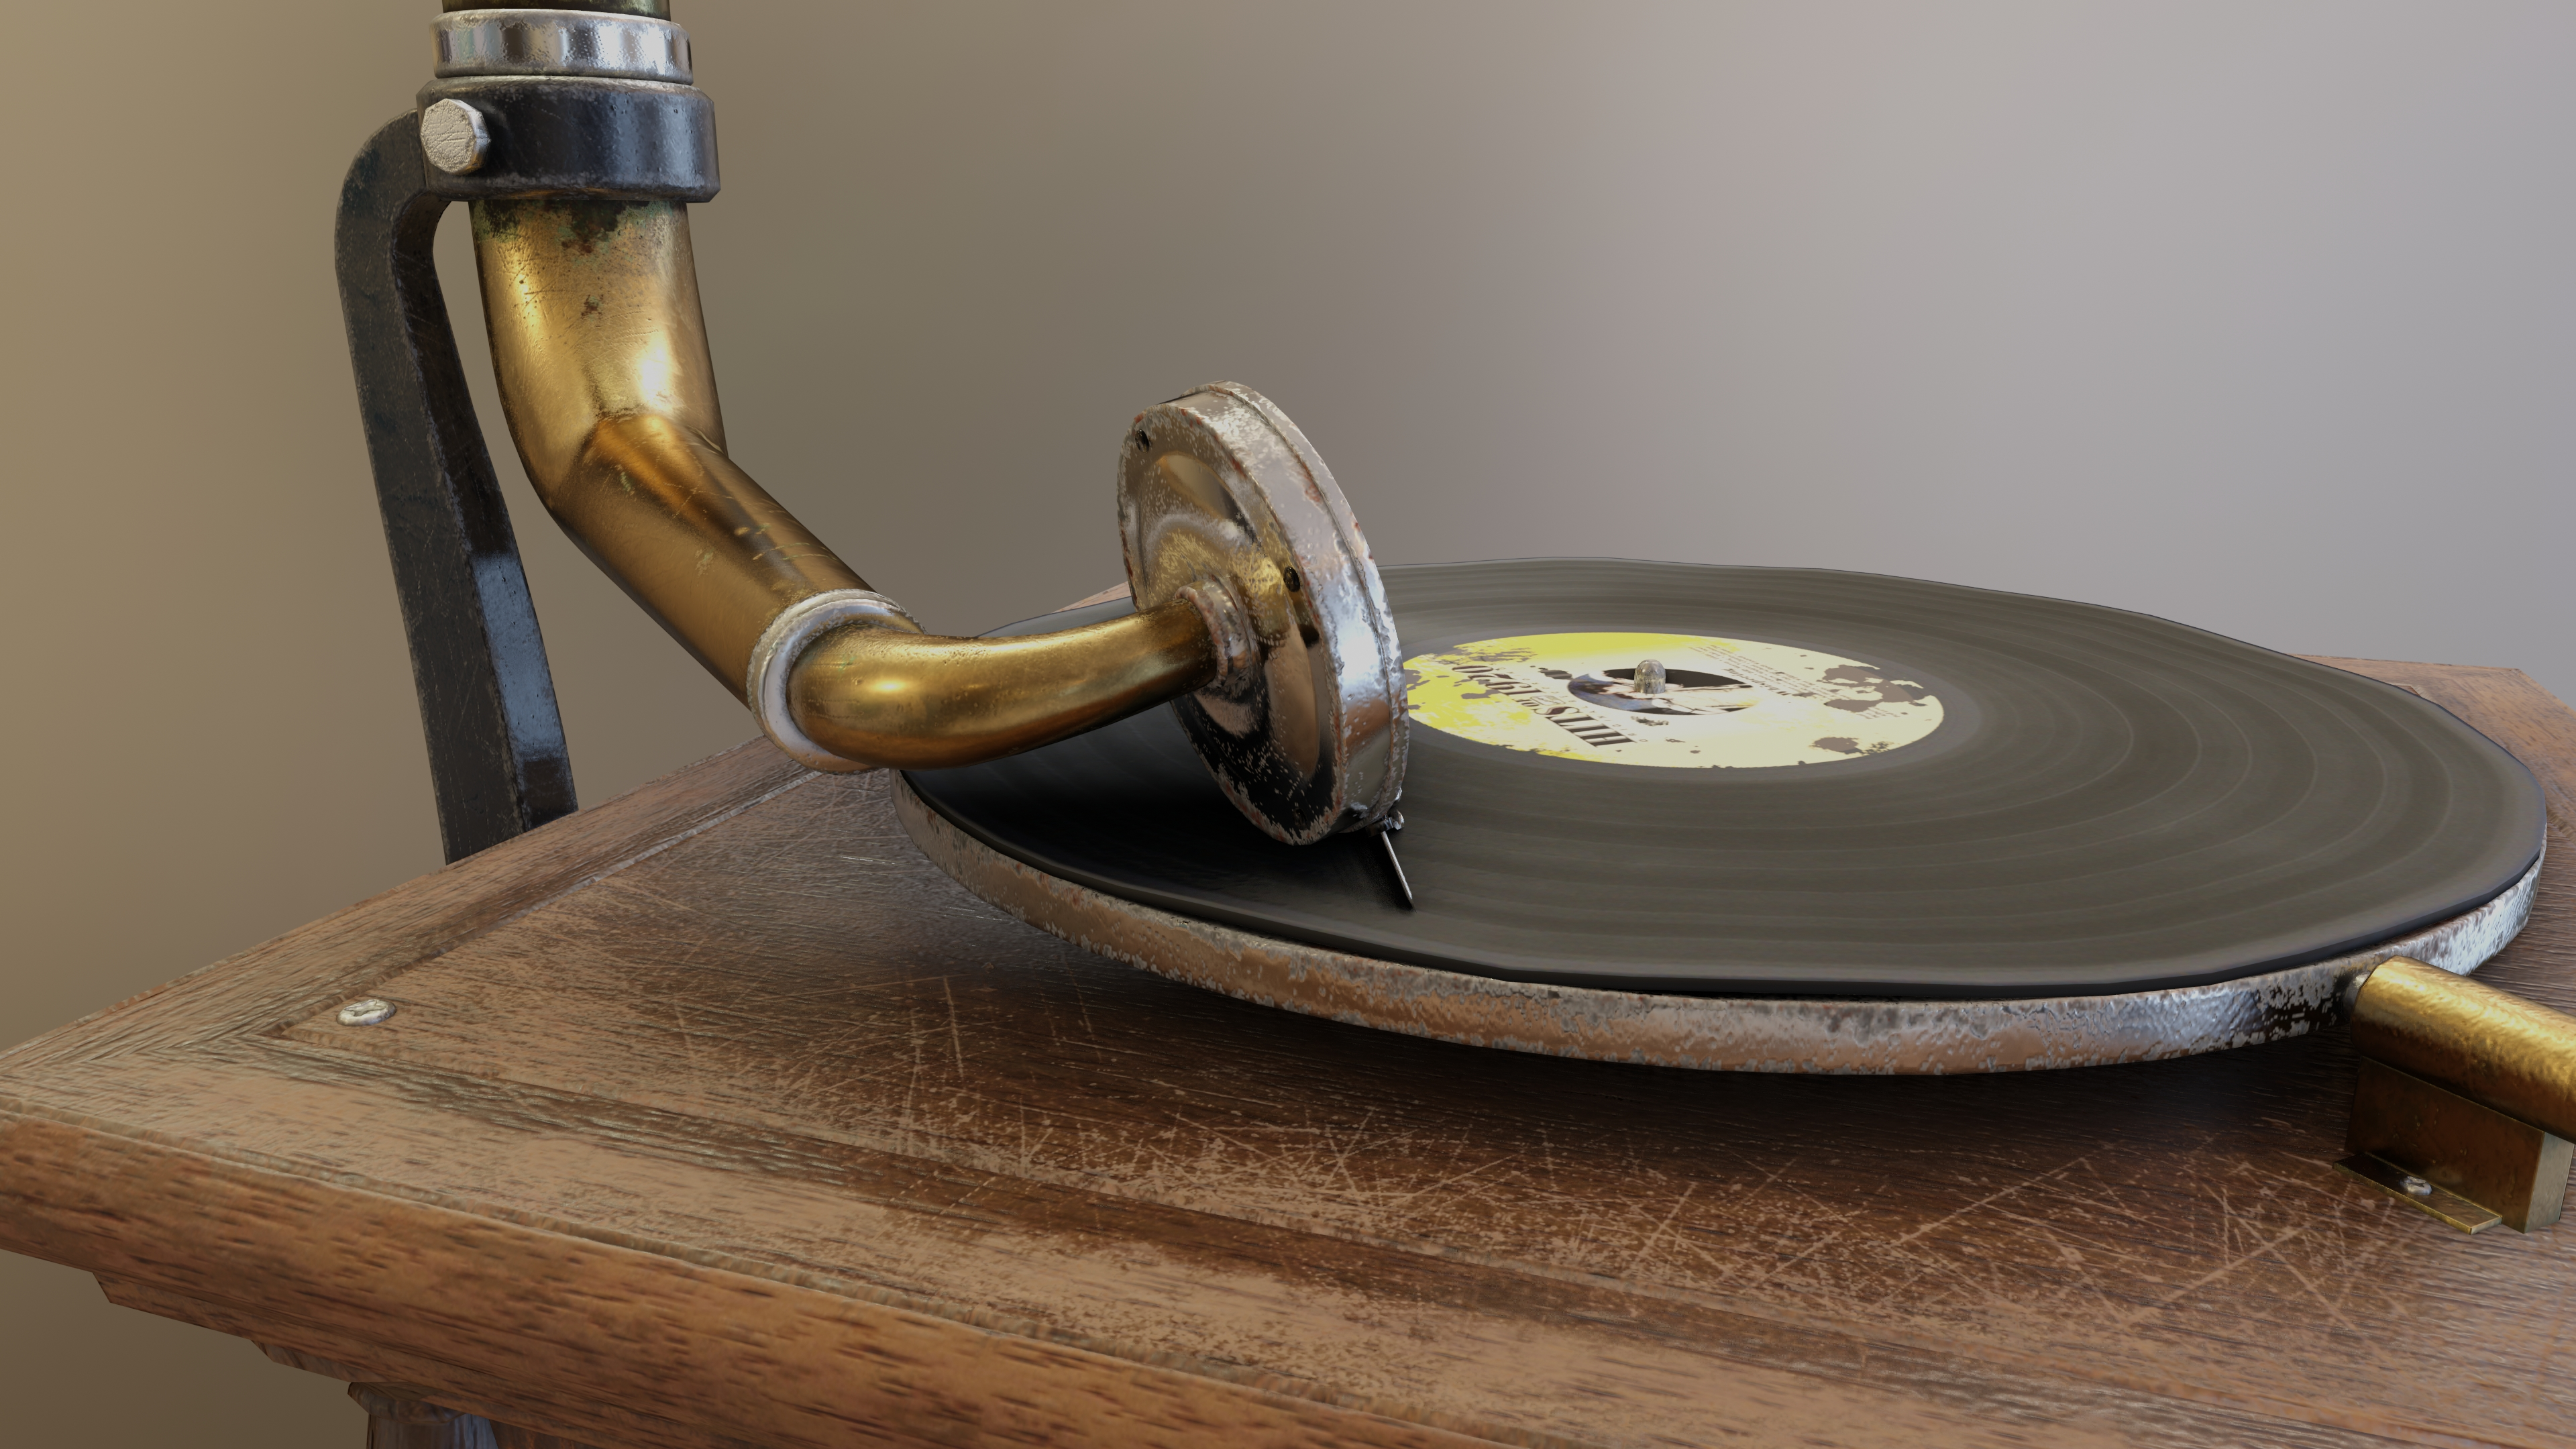 Stewarts Antique Record Player preview image 6